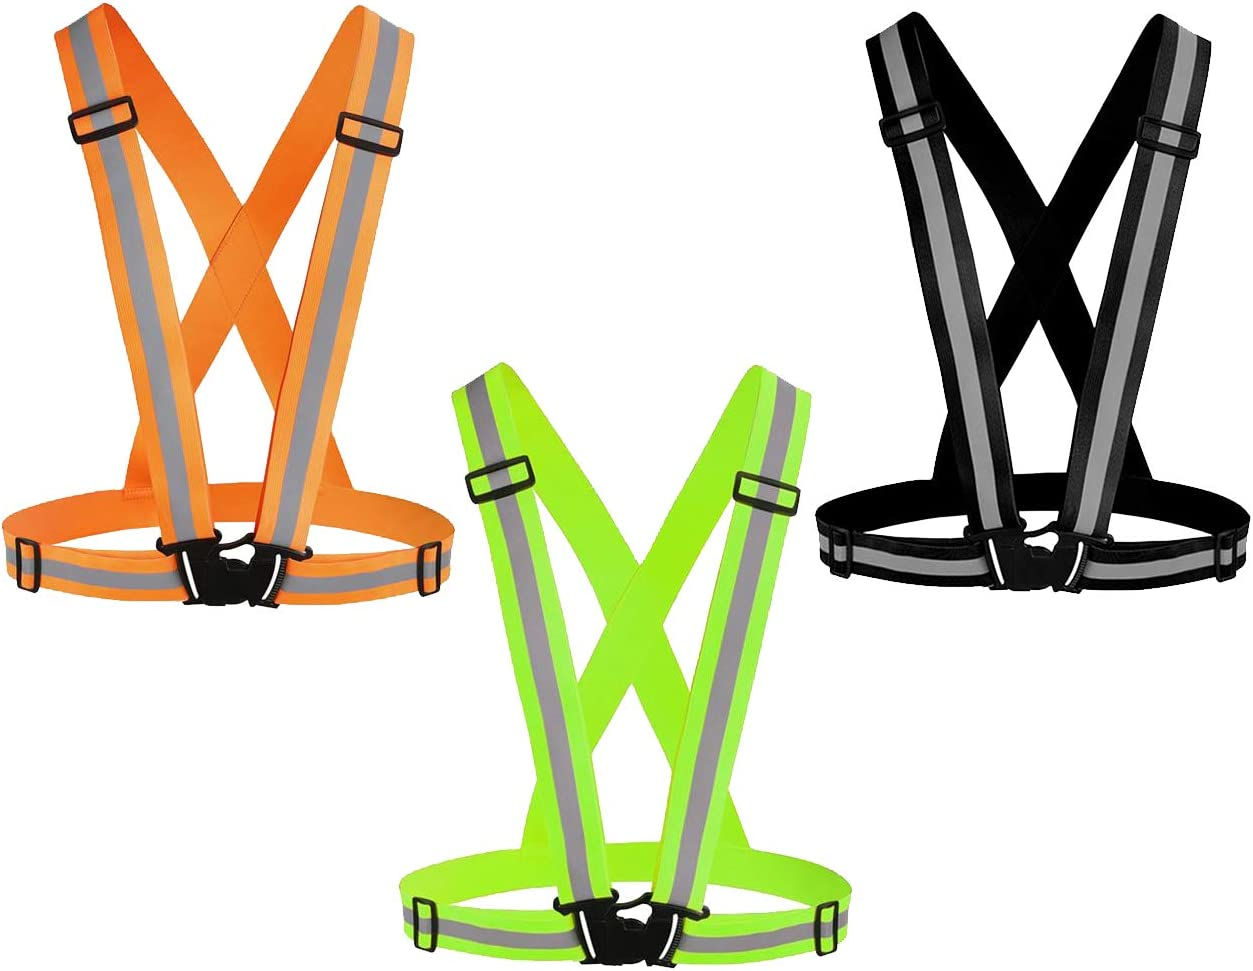 Awnuuw Reflective Vest Running Gear Financial sales sale Safety Ves Adjustable lowest price 3Pack